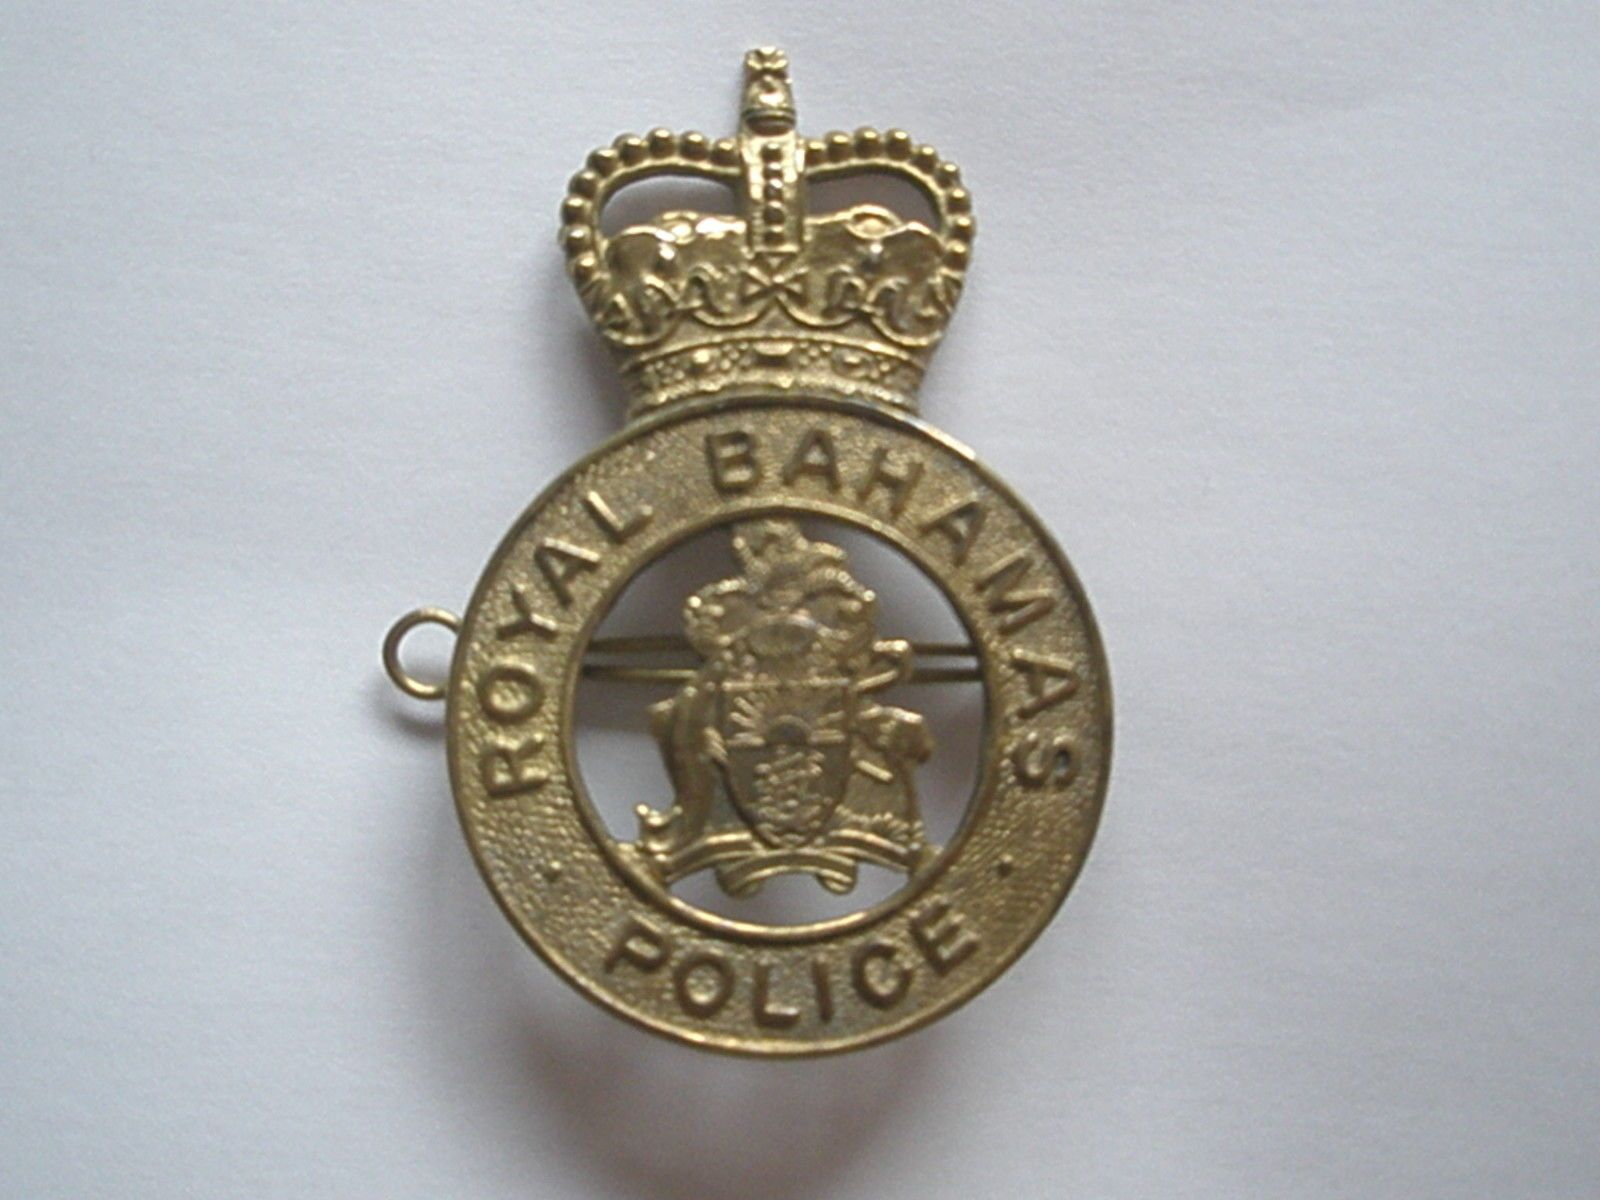 custom and badge pendant arthurs police repairs gallery lake img zurich jewelry design il